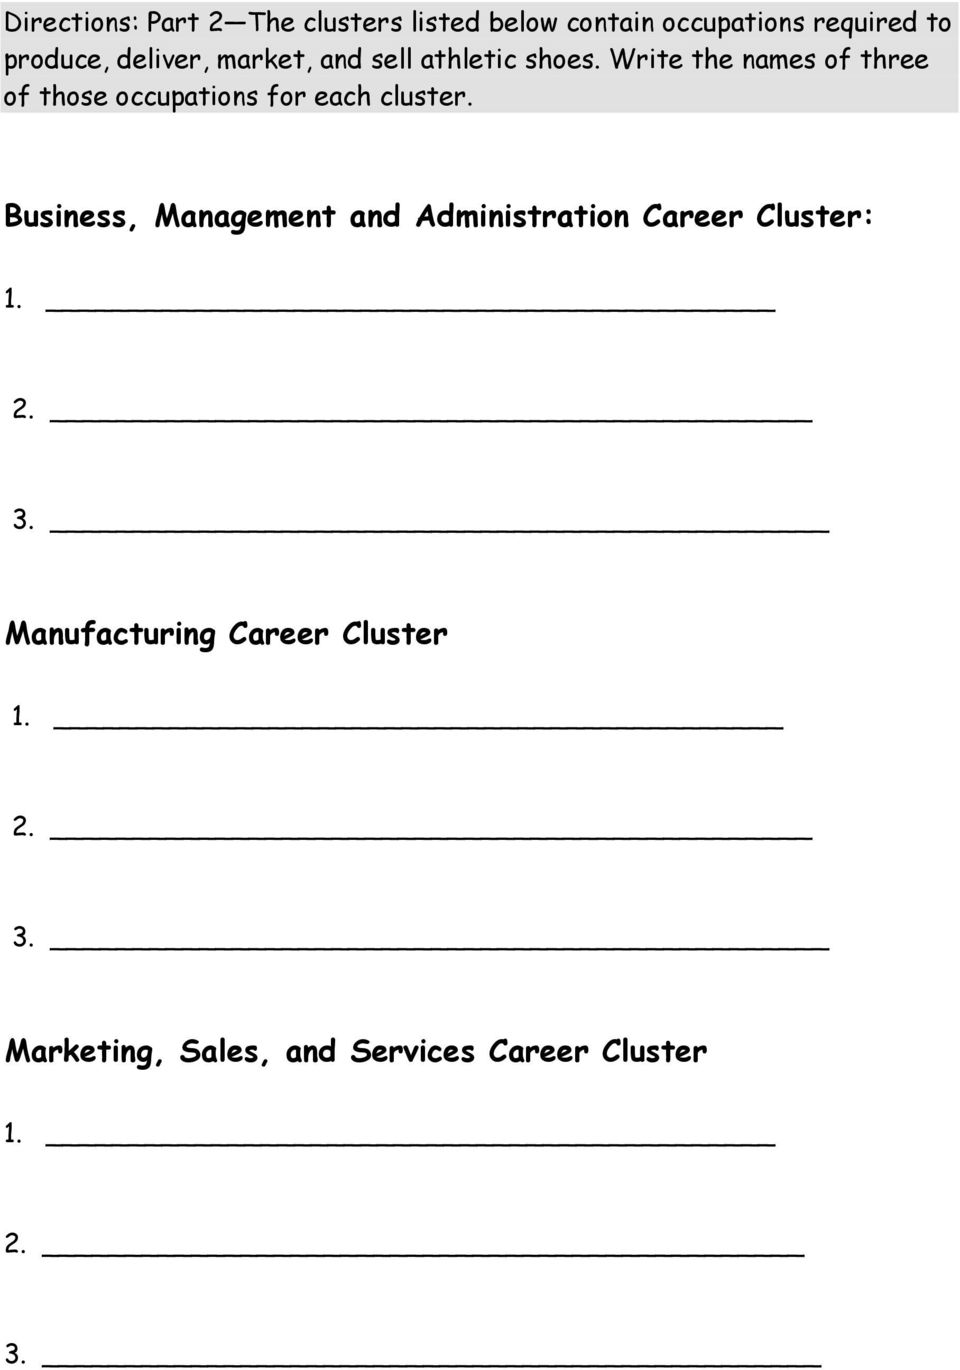 Write the names of three of those occupations for each cluster.